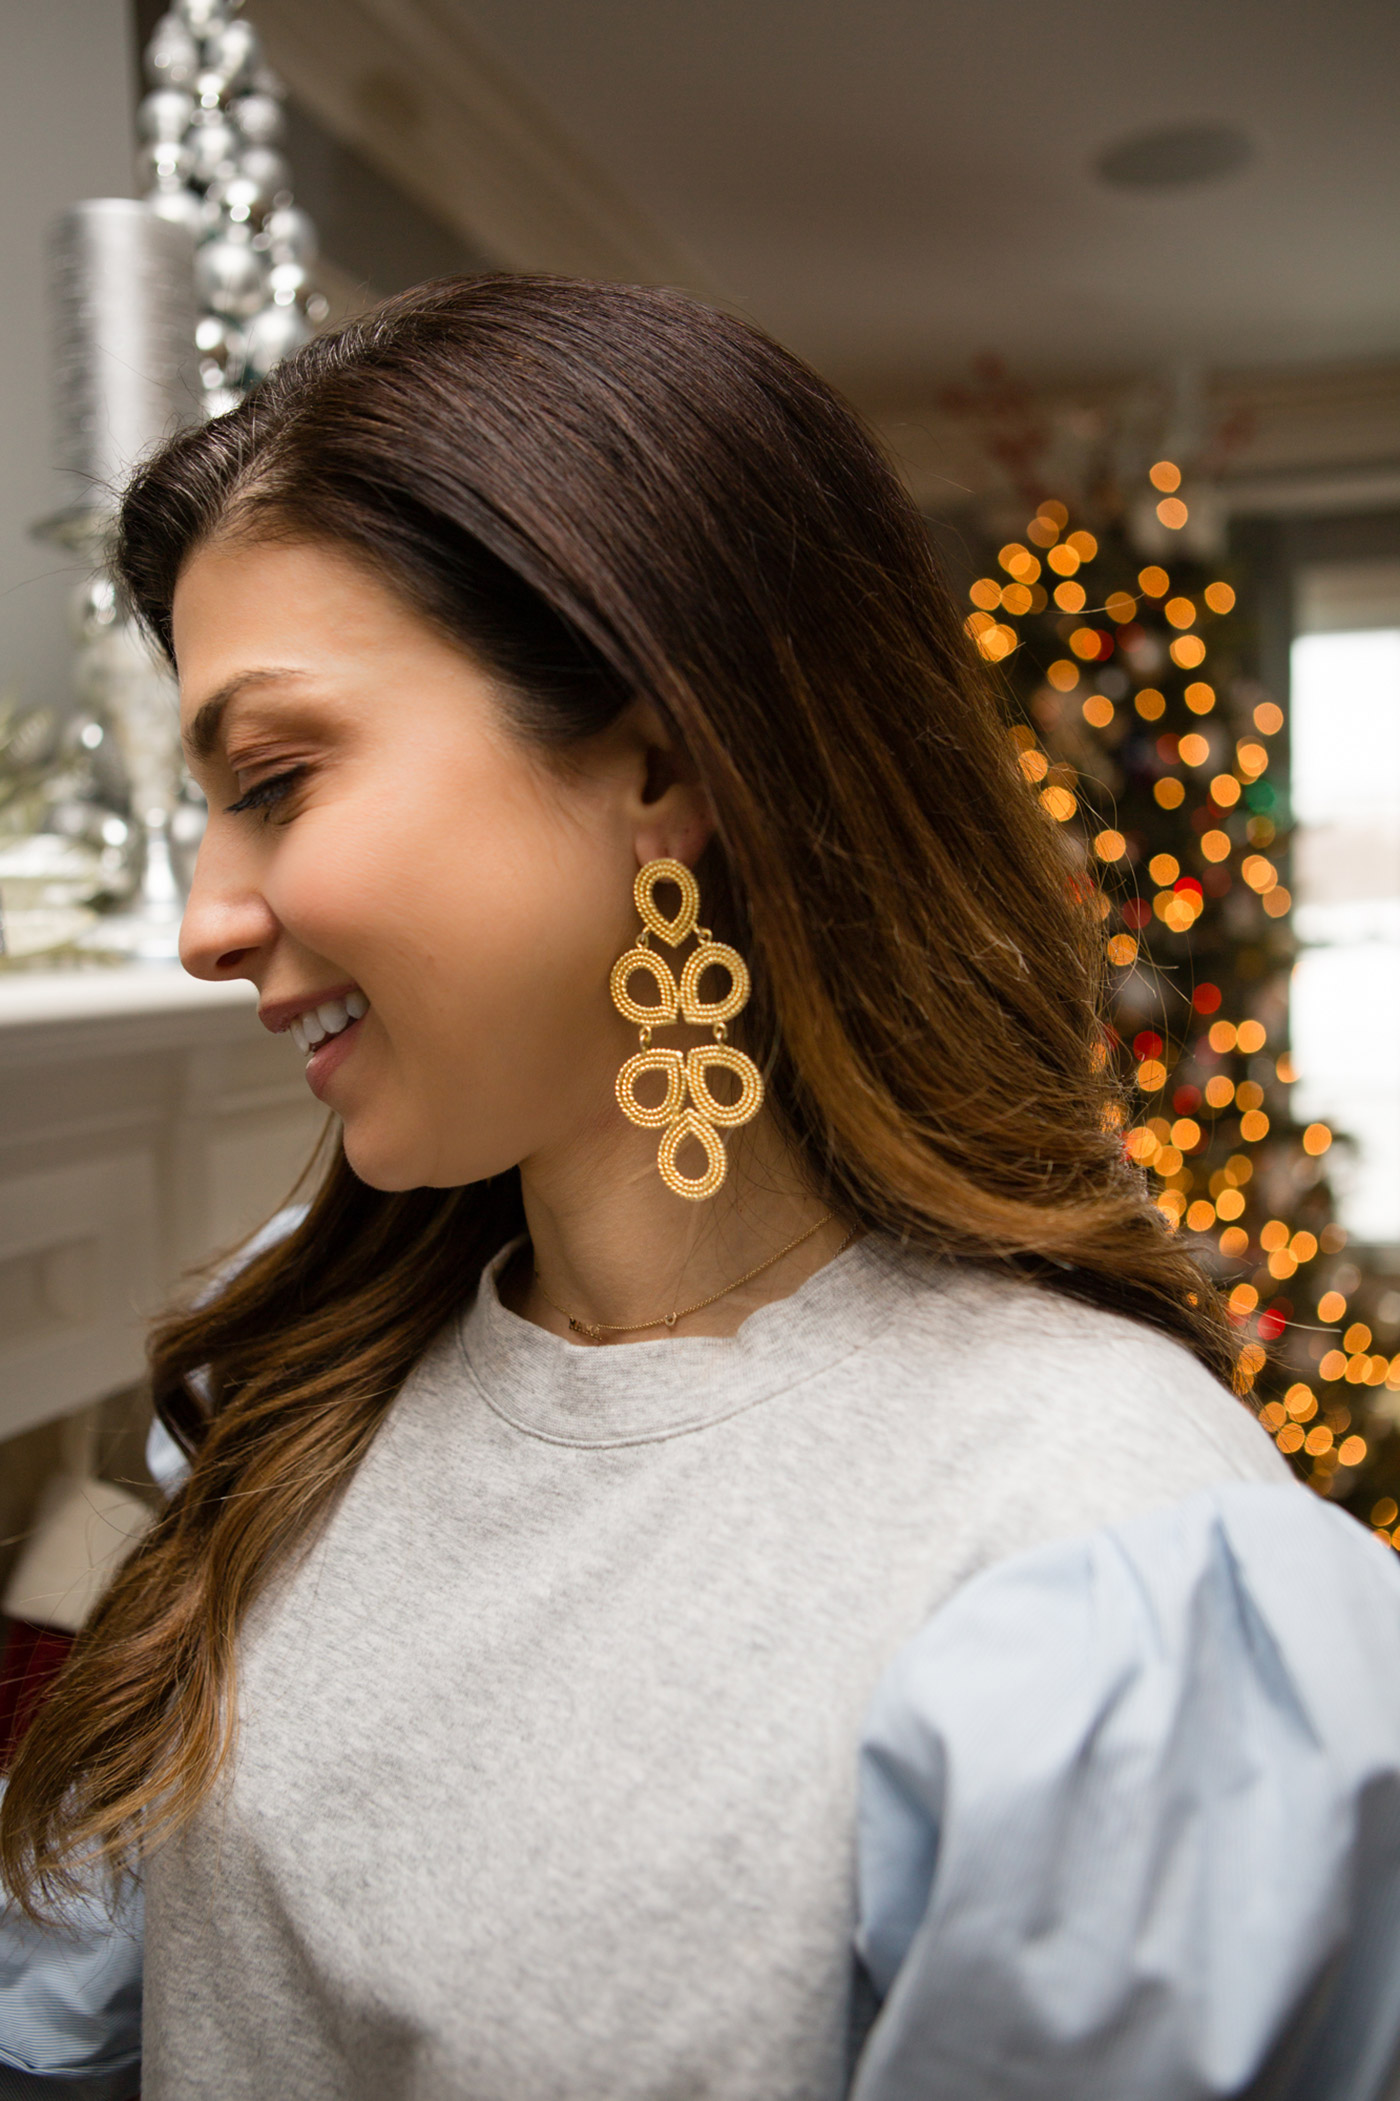 Lisi Lerch Earrings by popular Michigan fashion blog, The HSS Feed: image of a woman wearing Lisi Lerch earrings and hanging stockings on her fireplace mantle.